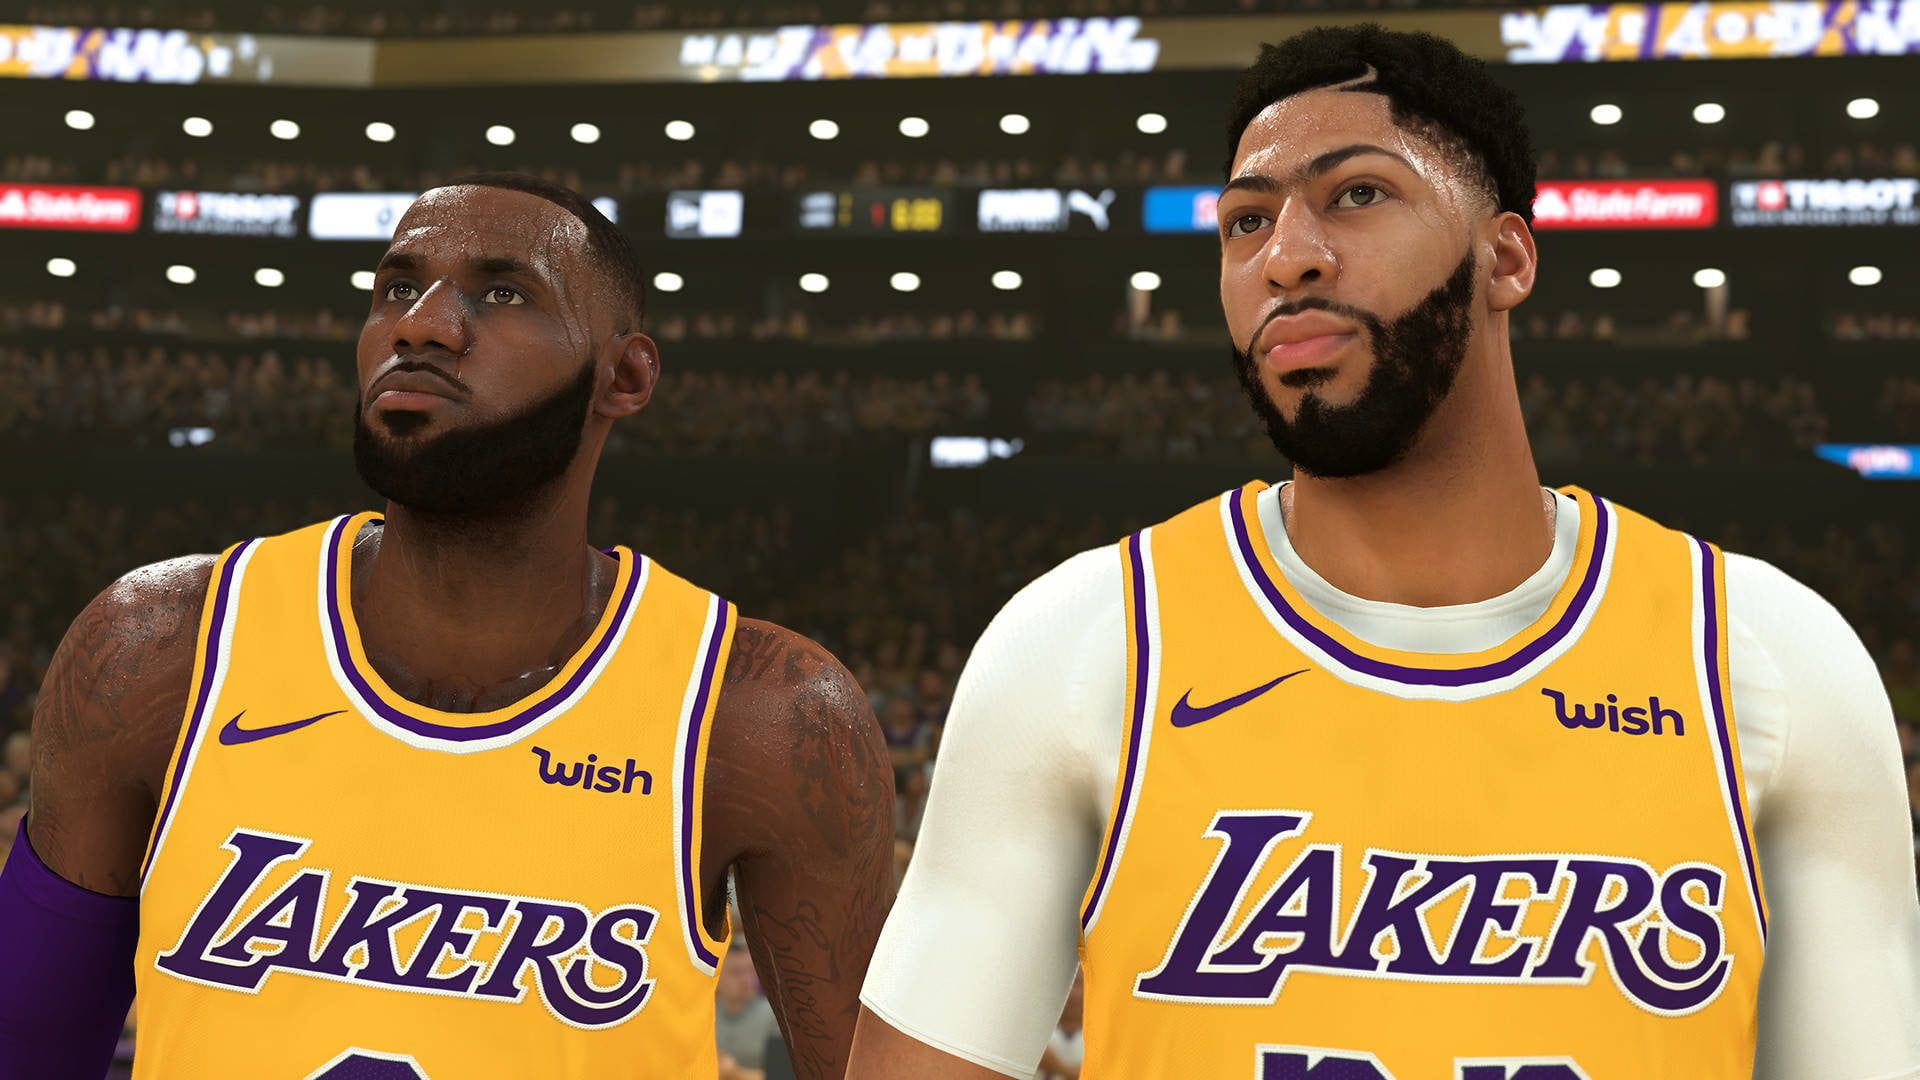 NBA 2K20 Players Call for Firing Developers After Game Glitches